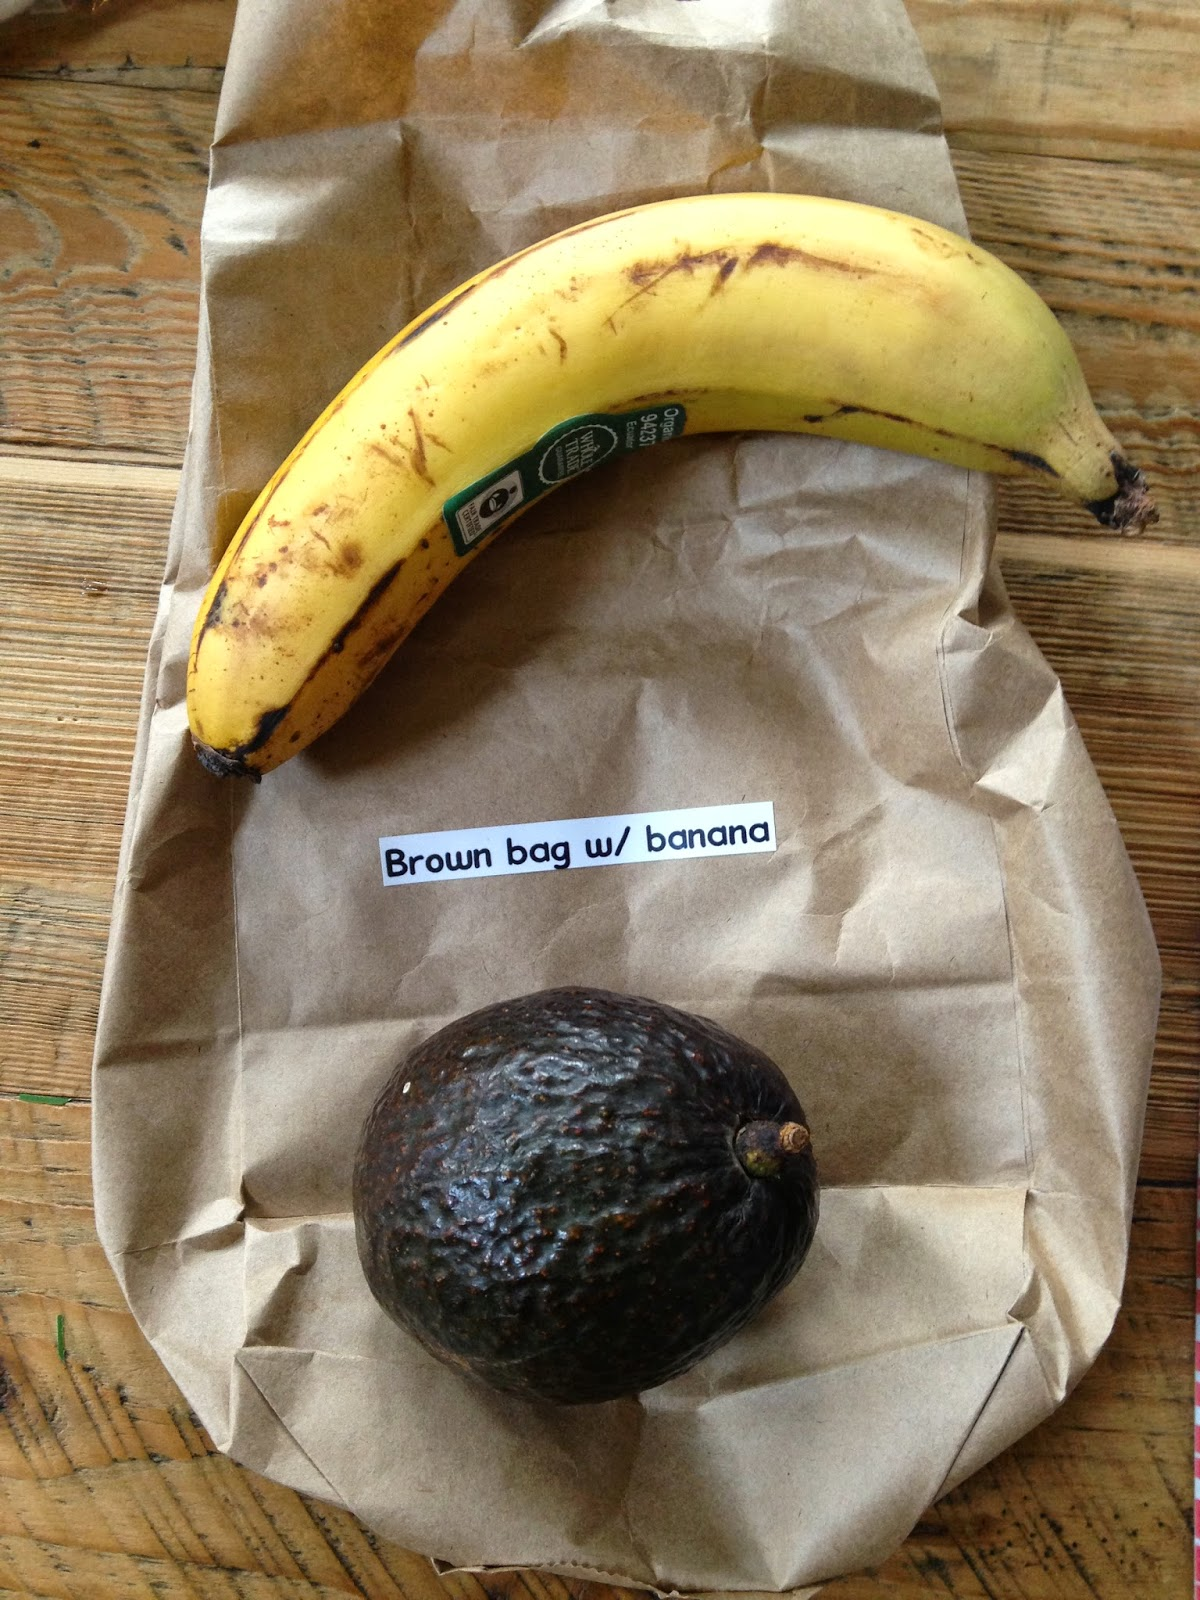 ripening avocados - stick them in a brown bag with a banana